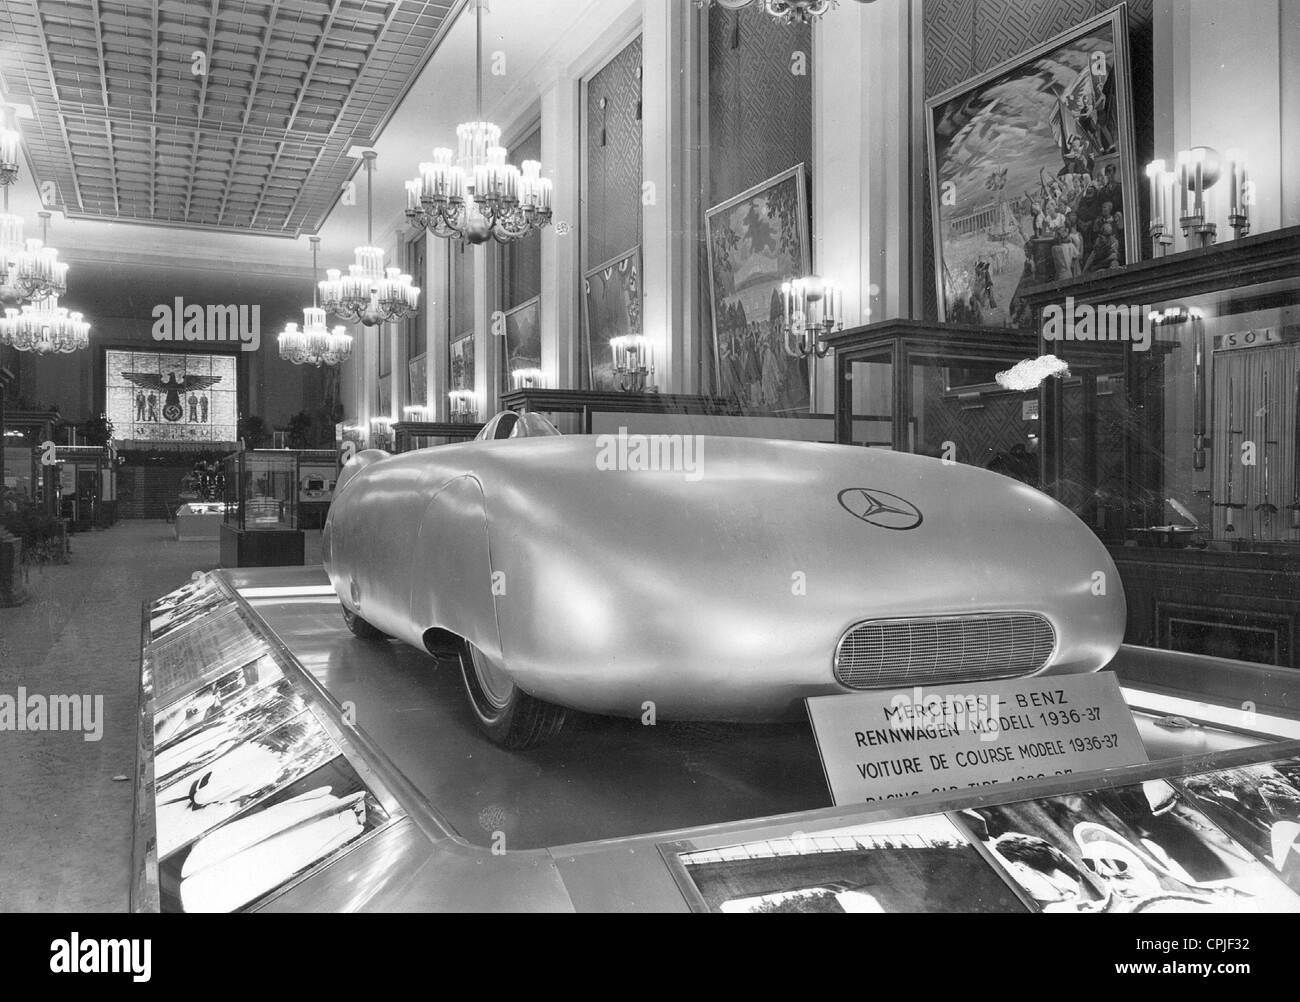 Mercedes-Benz racing car model 1936/37 - Stock Image